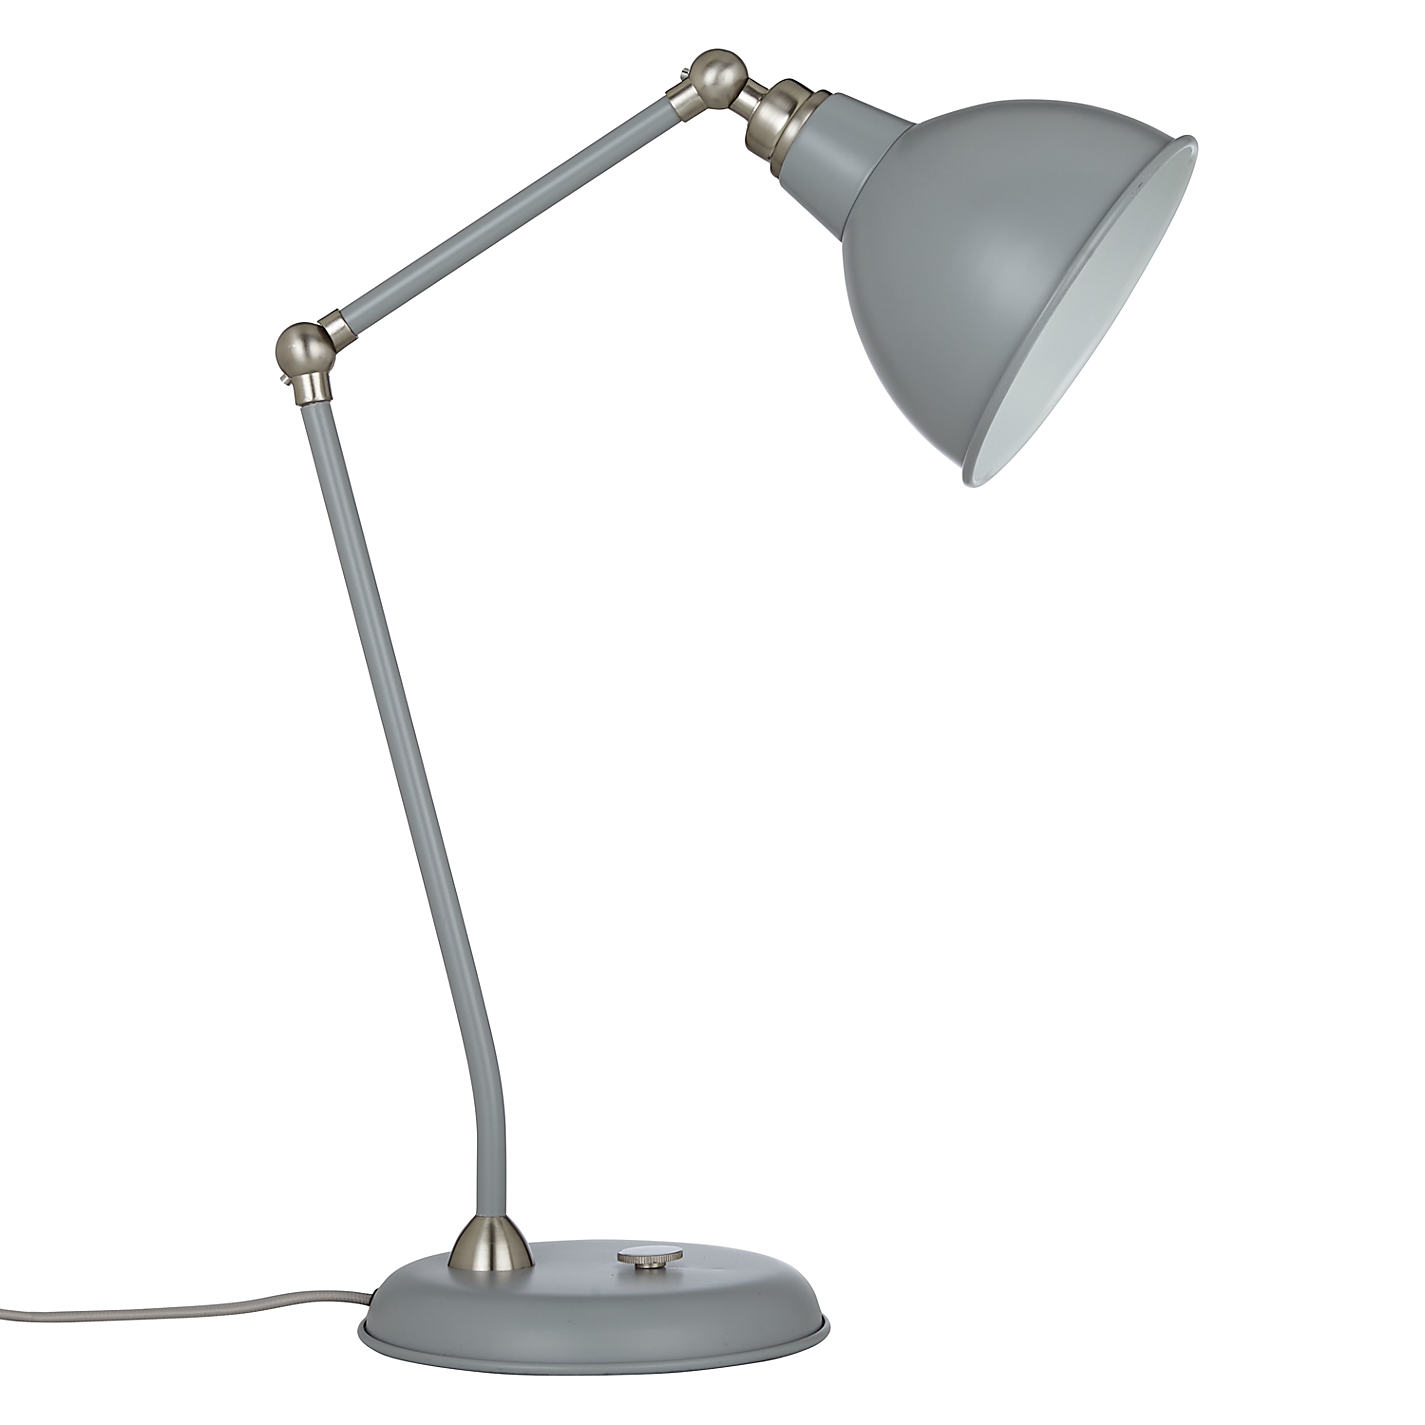 Buy john lewis aiden table lamp satin nickel john lewis buy john lewis aiden table lamp satin nickel online at johnlewis geotapseo Image collections